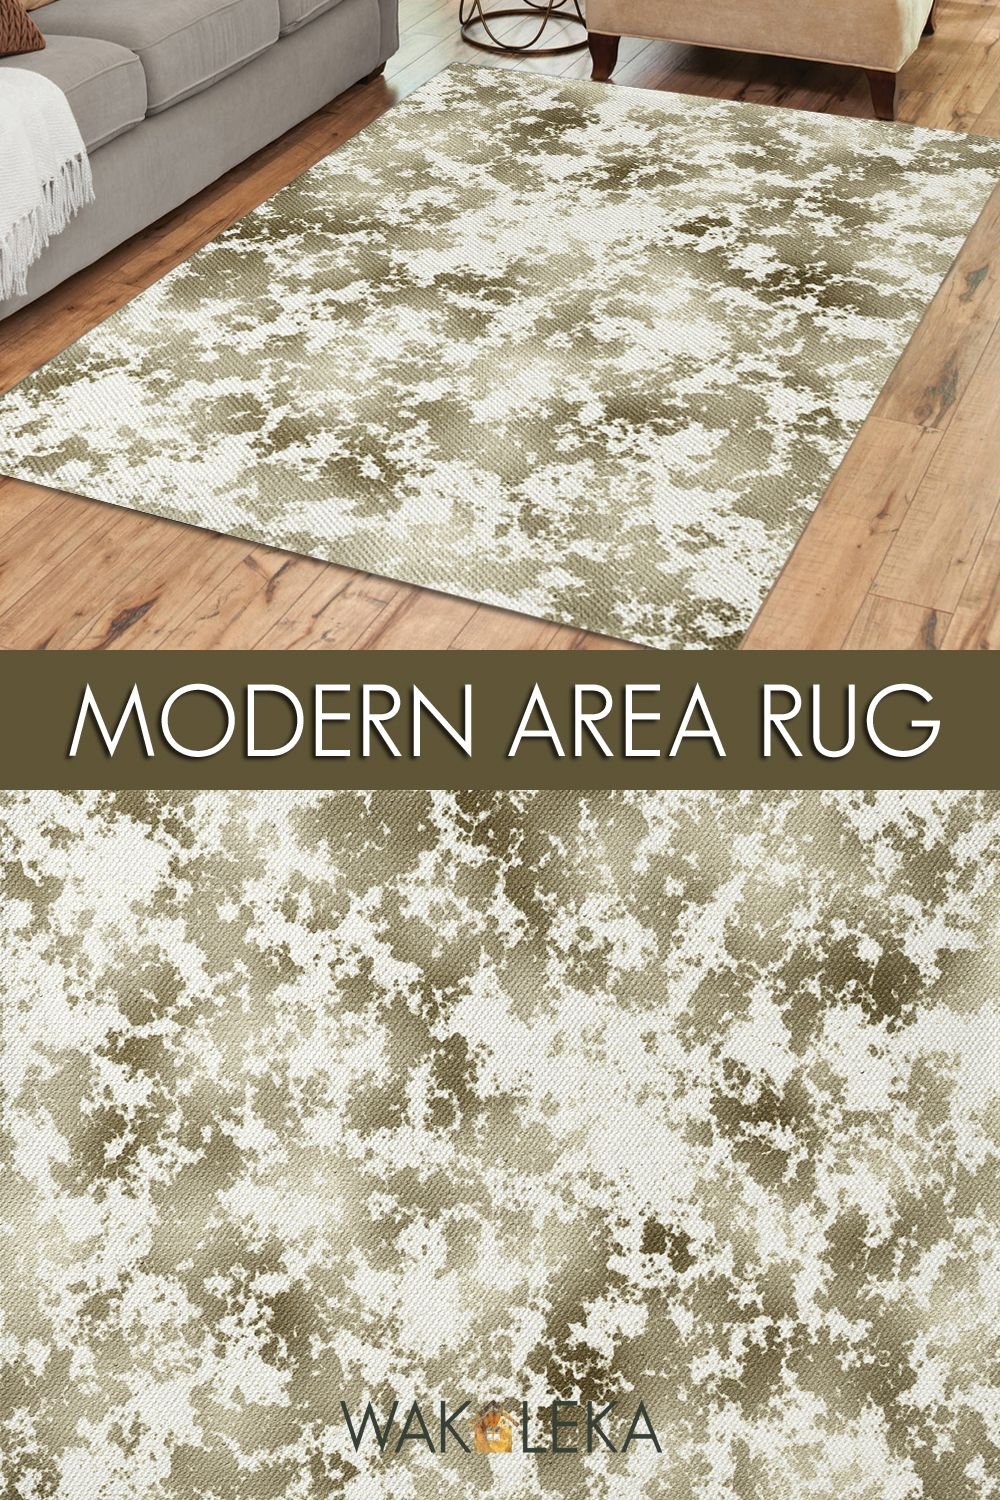 A Textured Abstract Industrial Style Area Rug In Three Sizes Beautifully Printed Dobby Rug With Hemmed Edges Non Skid Rug Pad In 2020 Area Rugs Modern Area Rugs Rugs